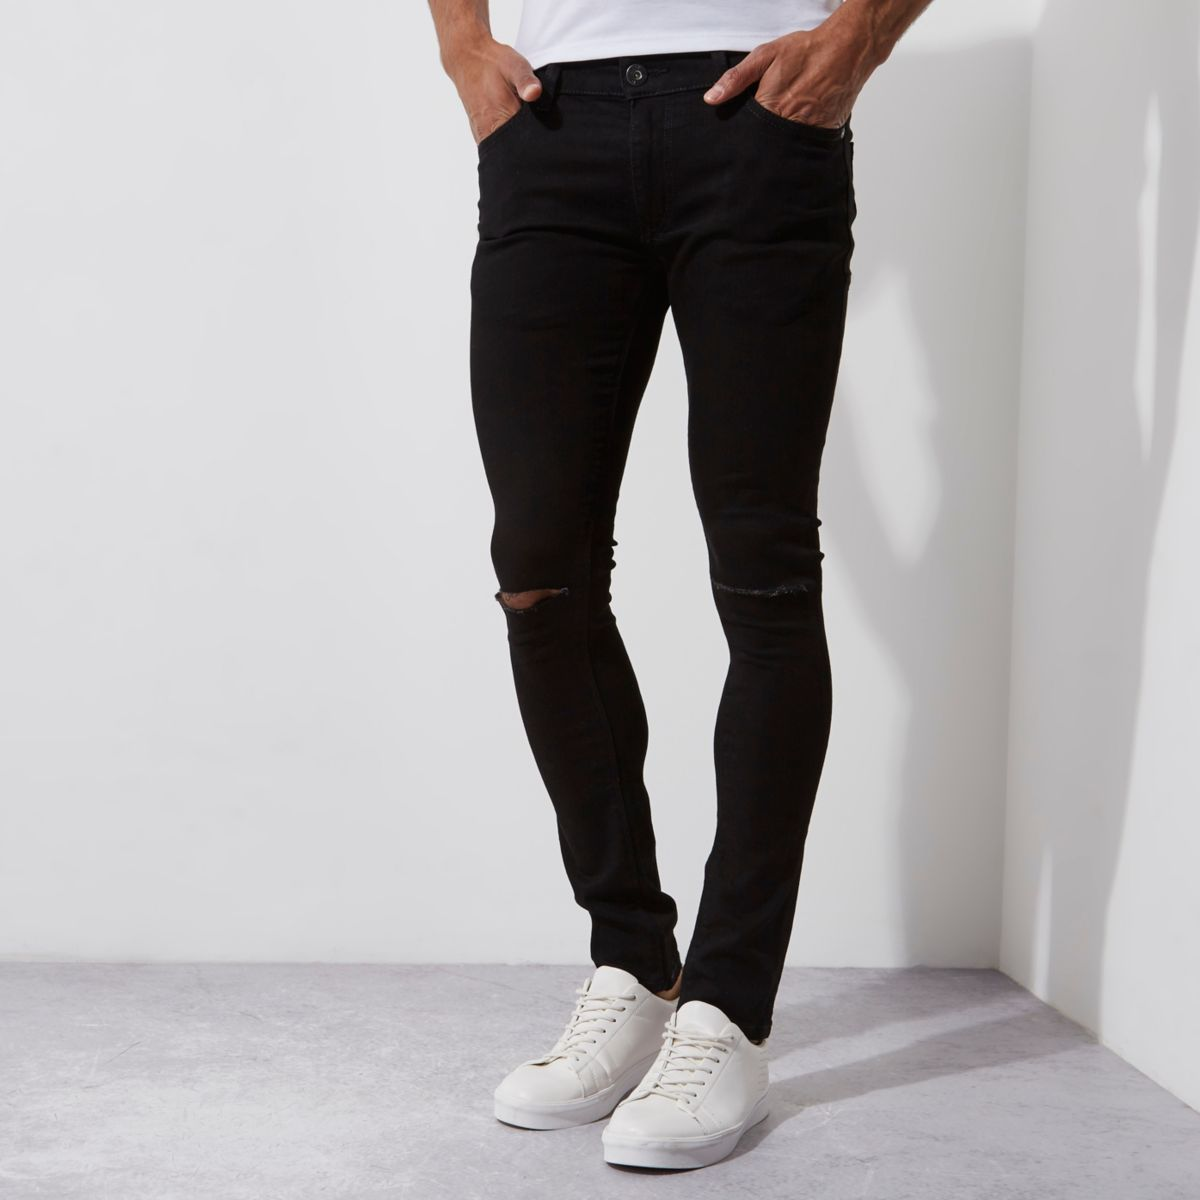 Black ripped super skinny Danny jeans - Jeans - Sale - men